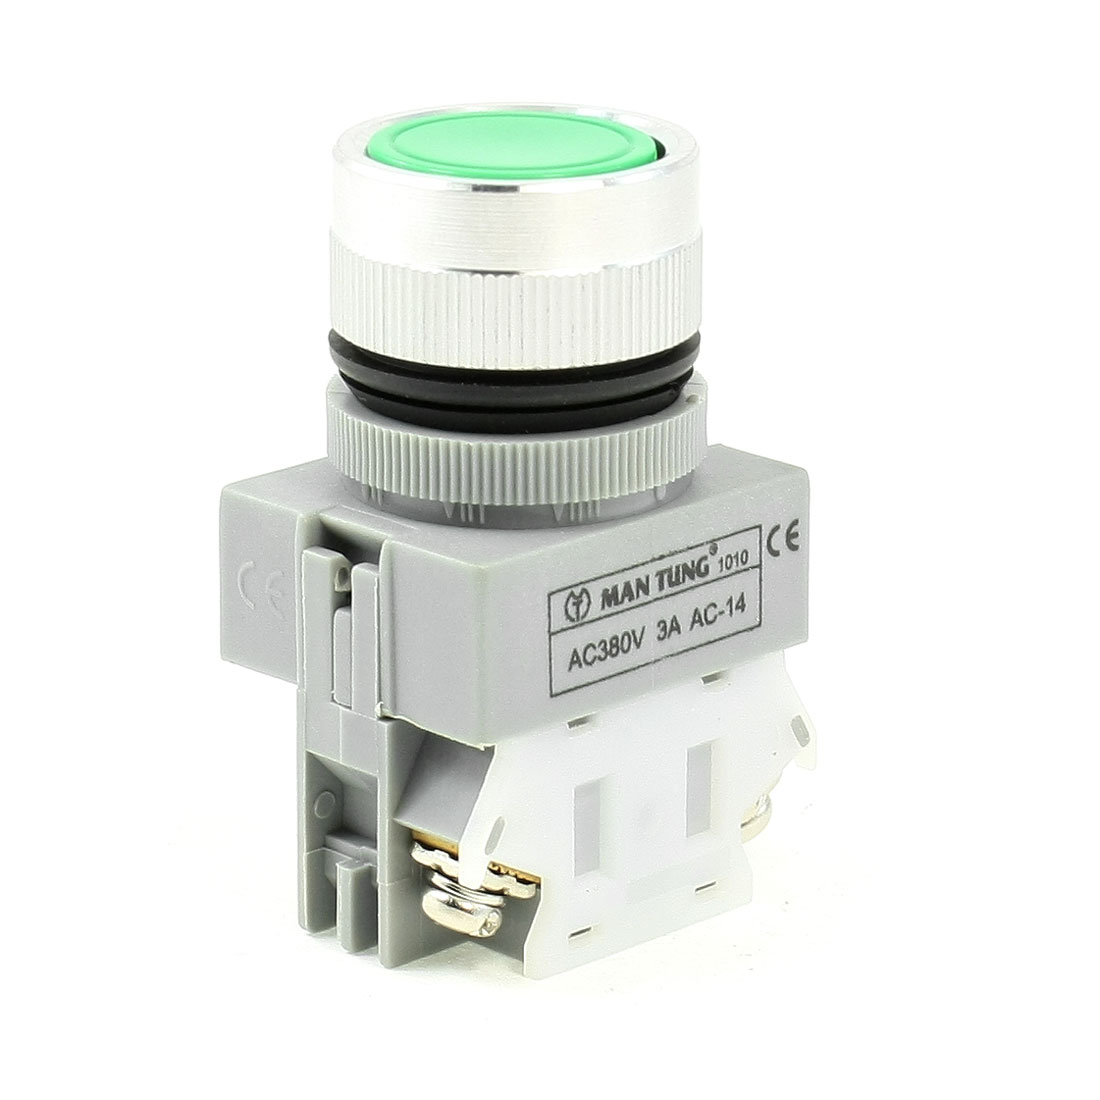 Round-Green-Cap-2-Pin-Momentary-1NO-1NC-Electric-Push-Button-Switch-AC380V-3A